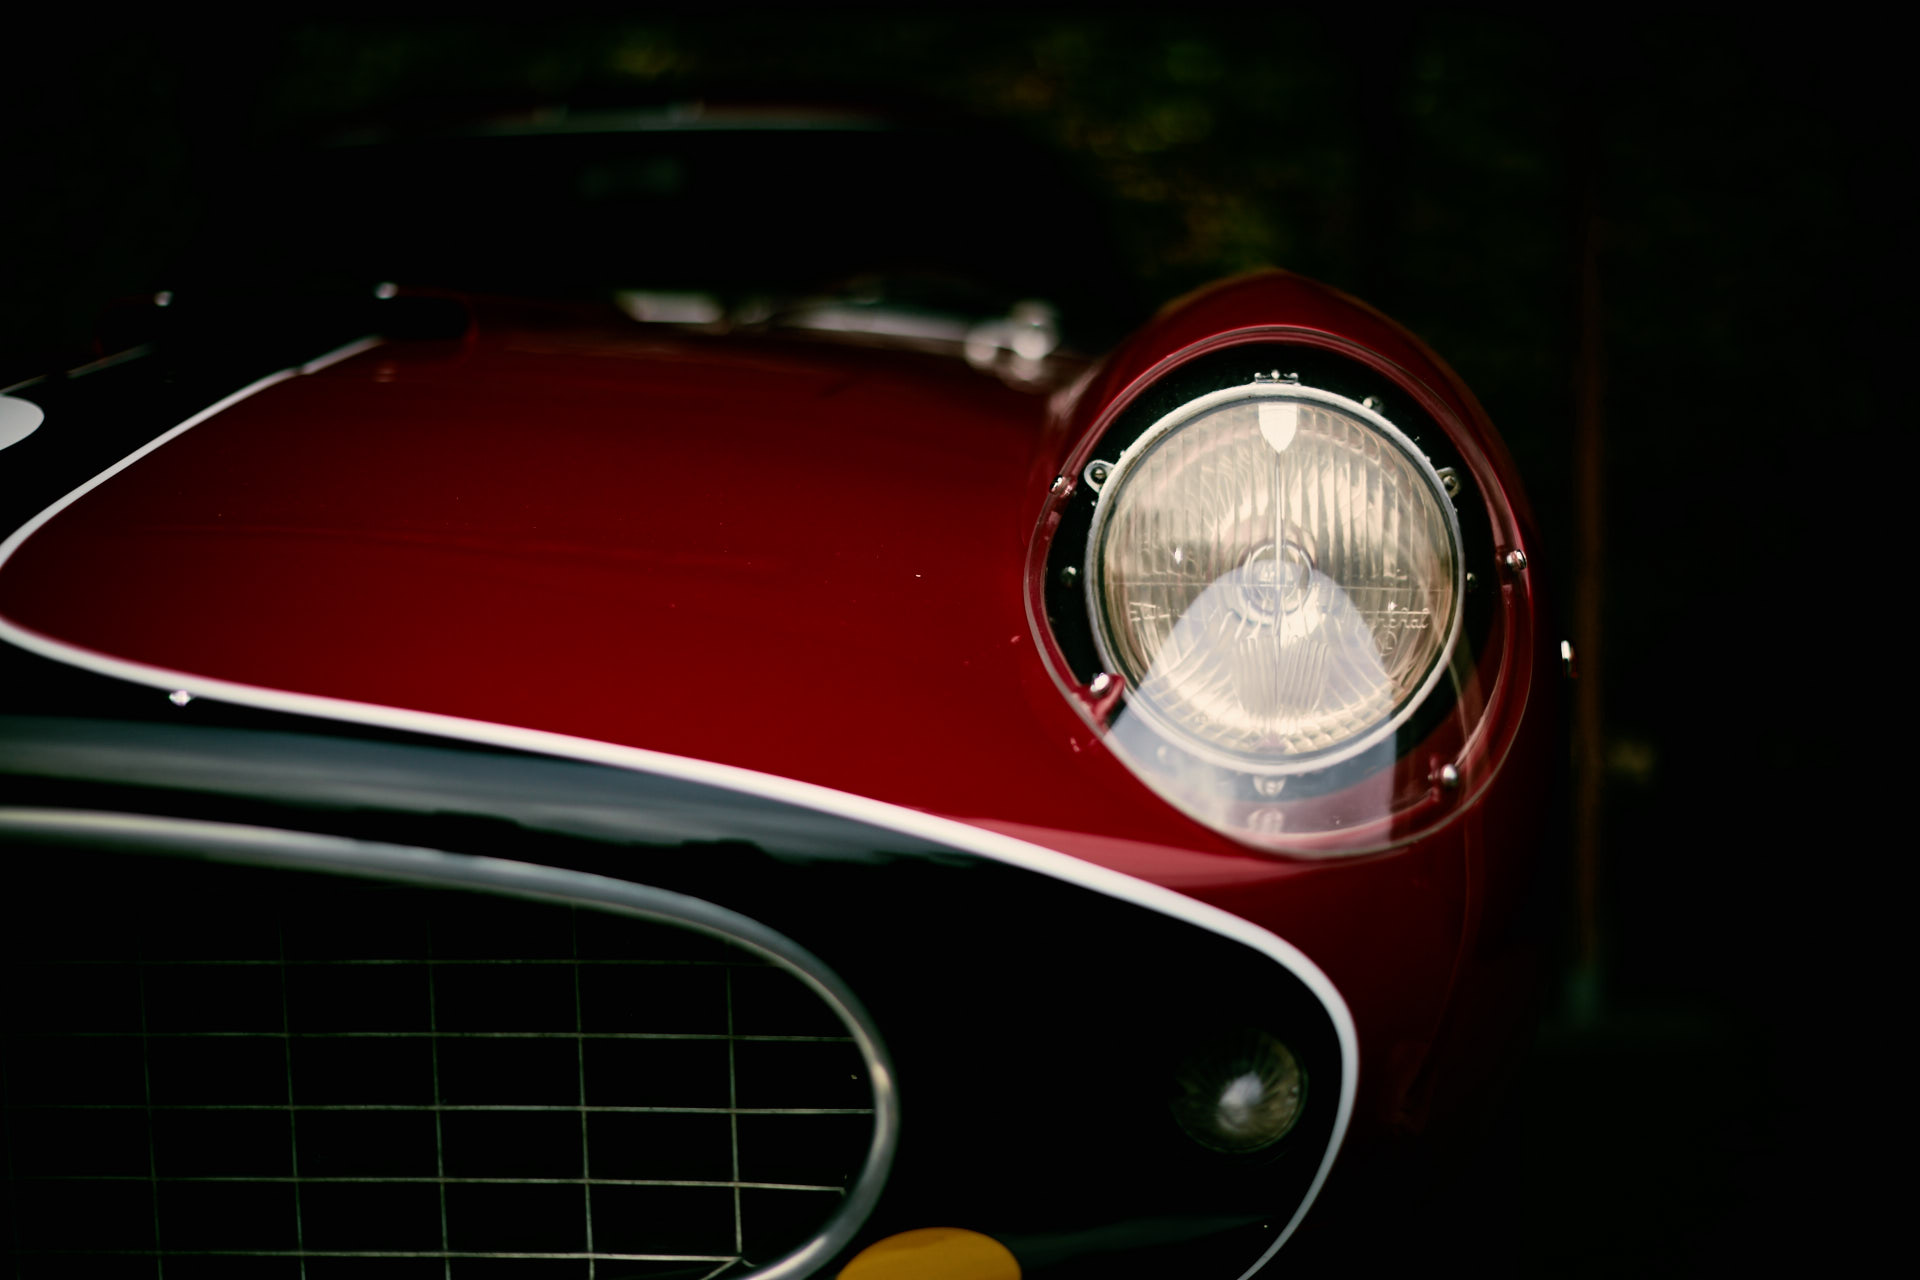 Ferrari eyes from the Goodwood Revival